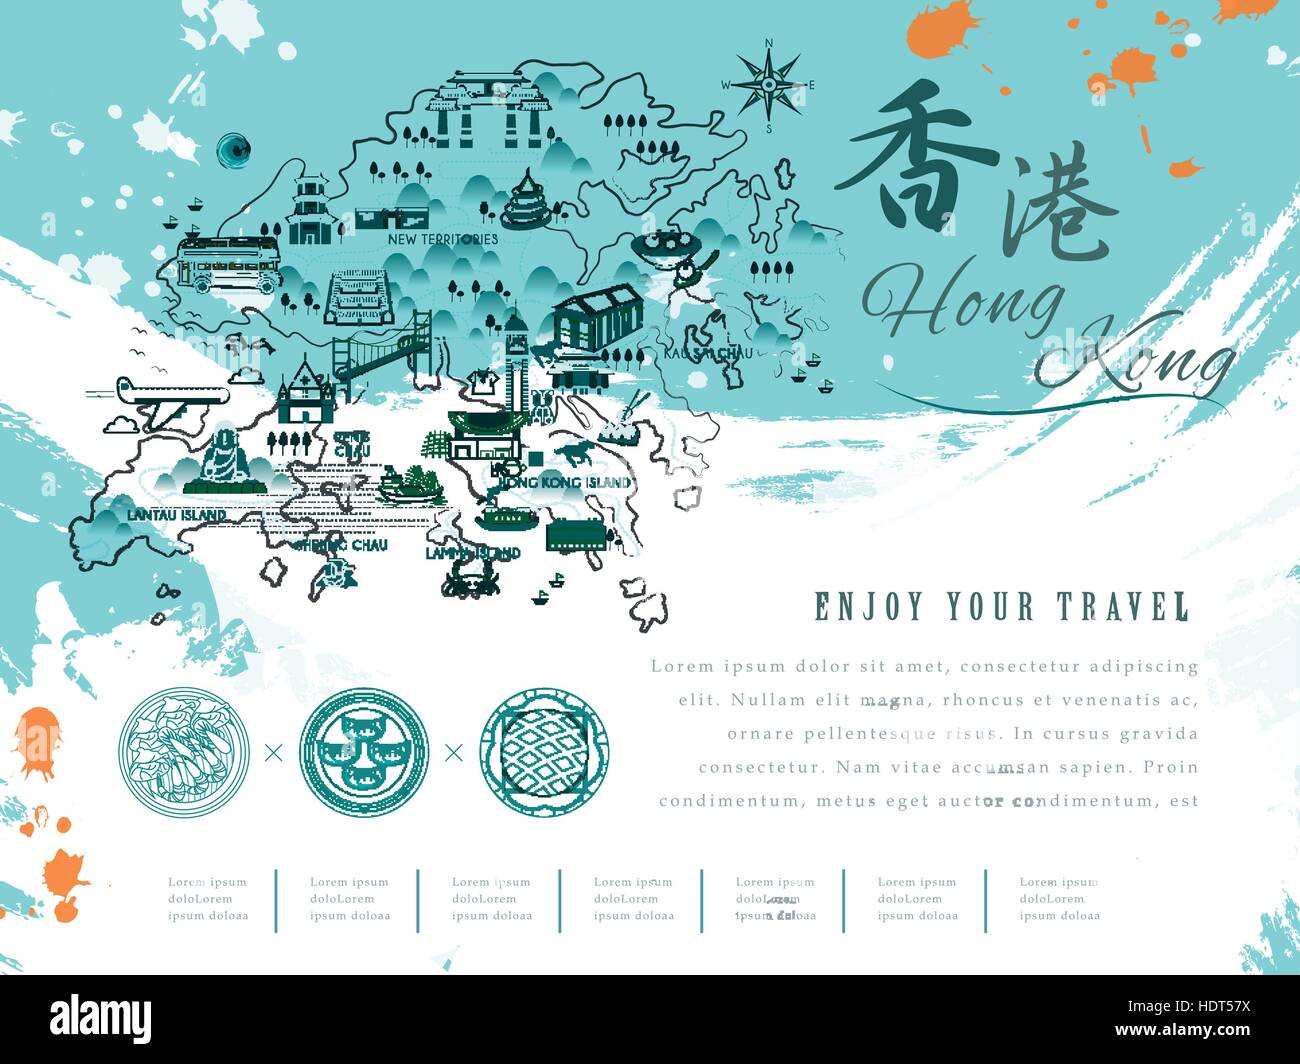 Poster design hong kong - Stock Vector Retro Hong Kong Travel Poster Design The Upper Right Title Is Hong Kong In Chinese Word